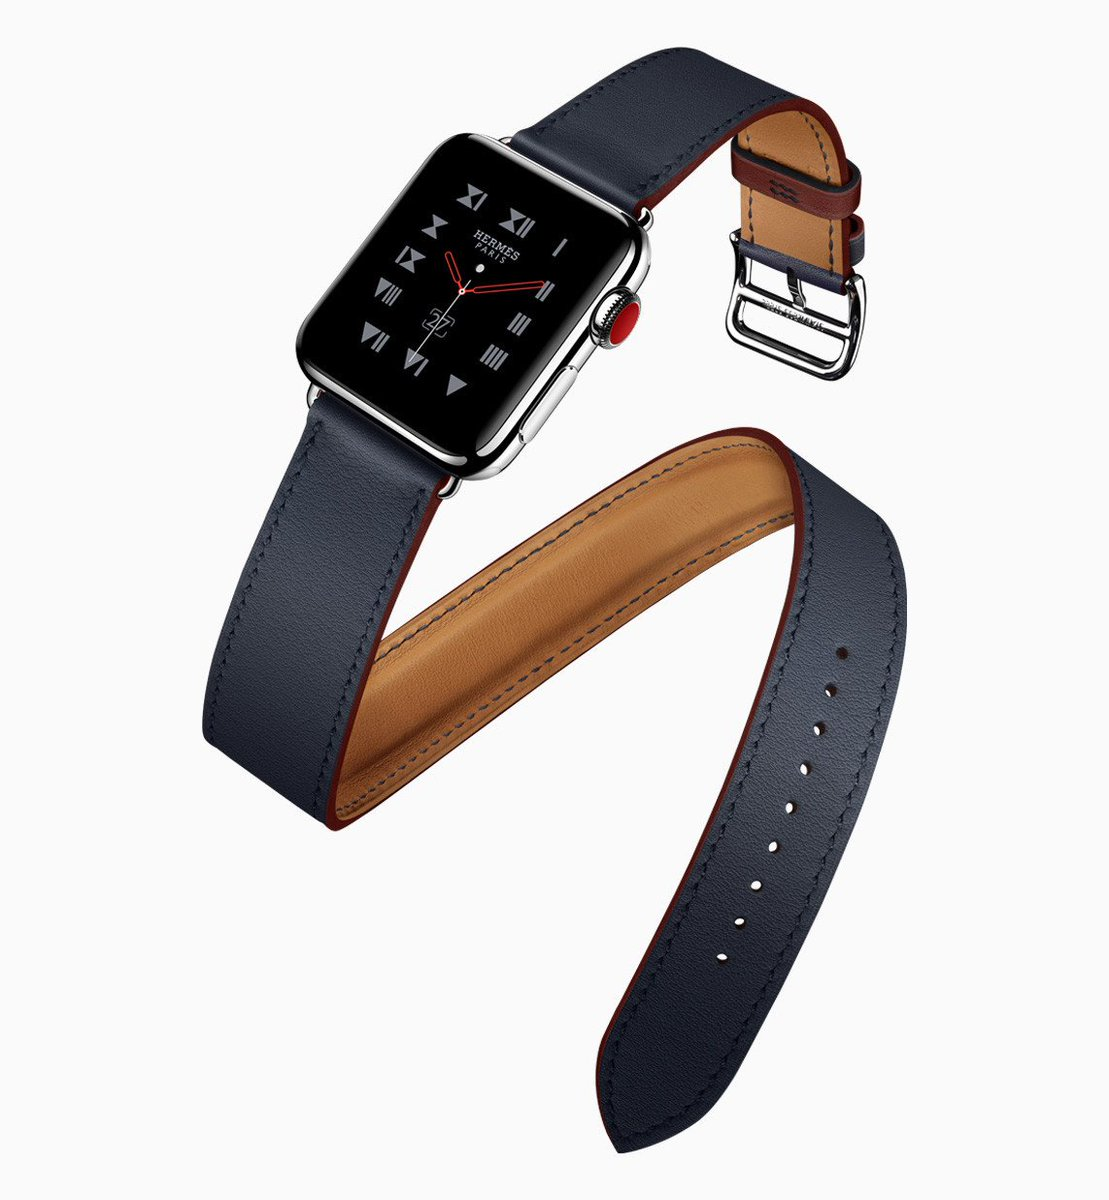 test Twitter Media - Apple Watch gets new bands for spring https://t.co/61krqSn95H https://t.co/grXUWn2HeI